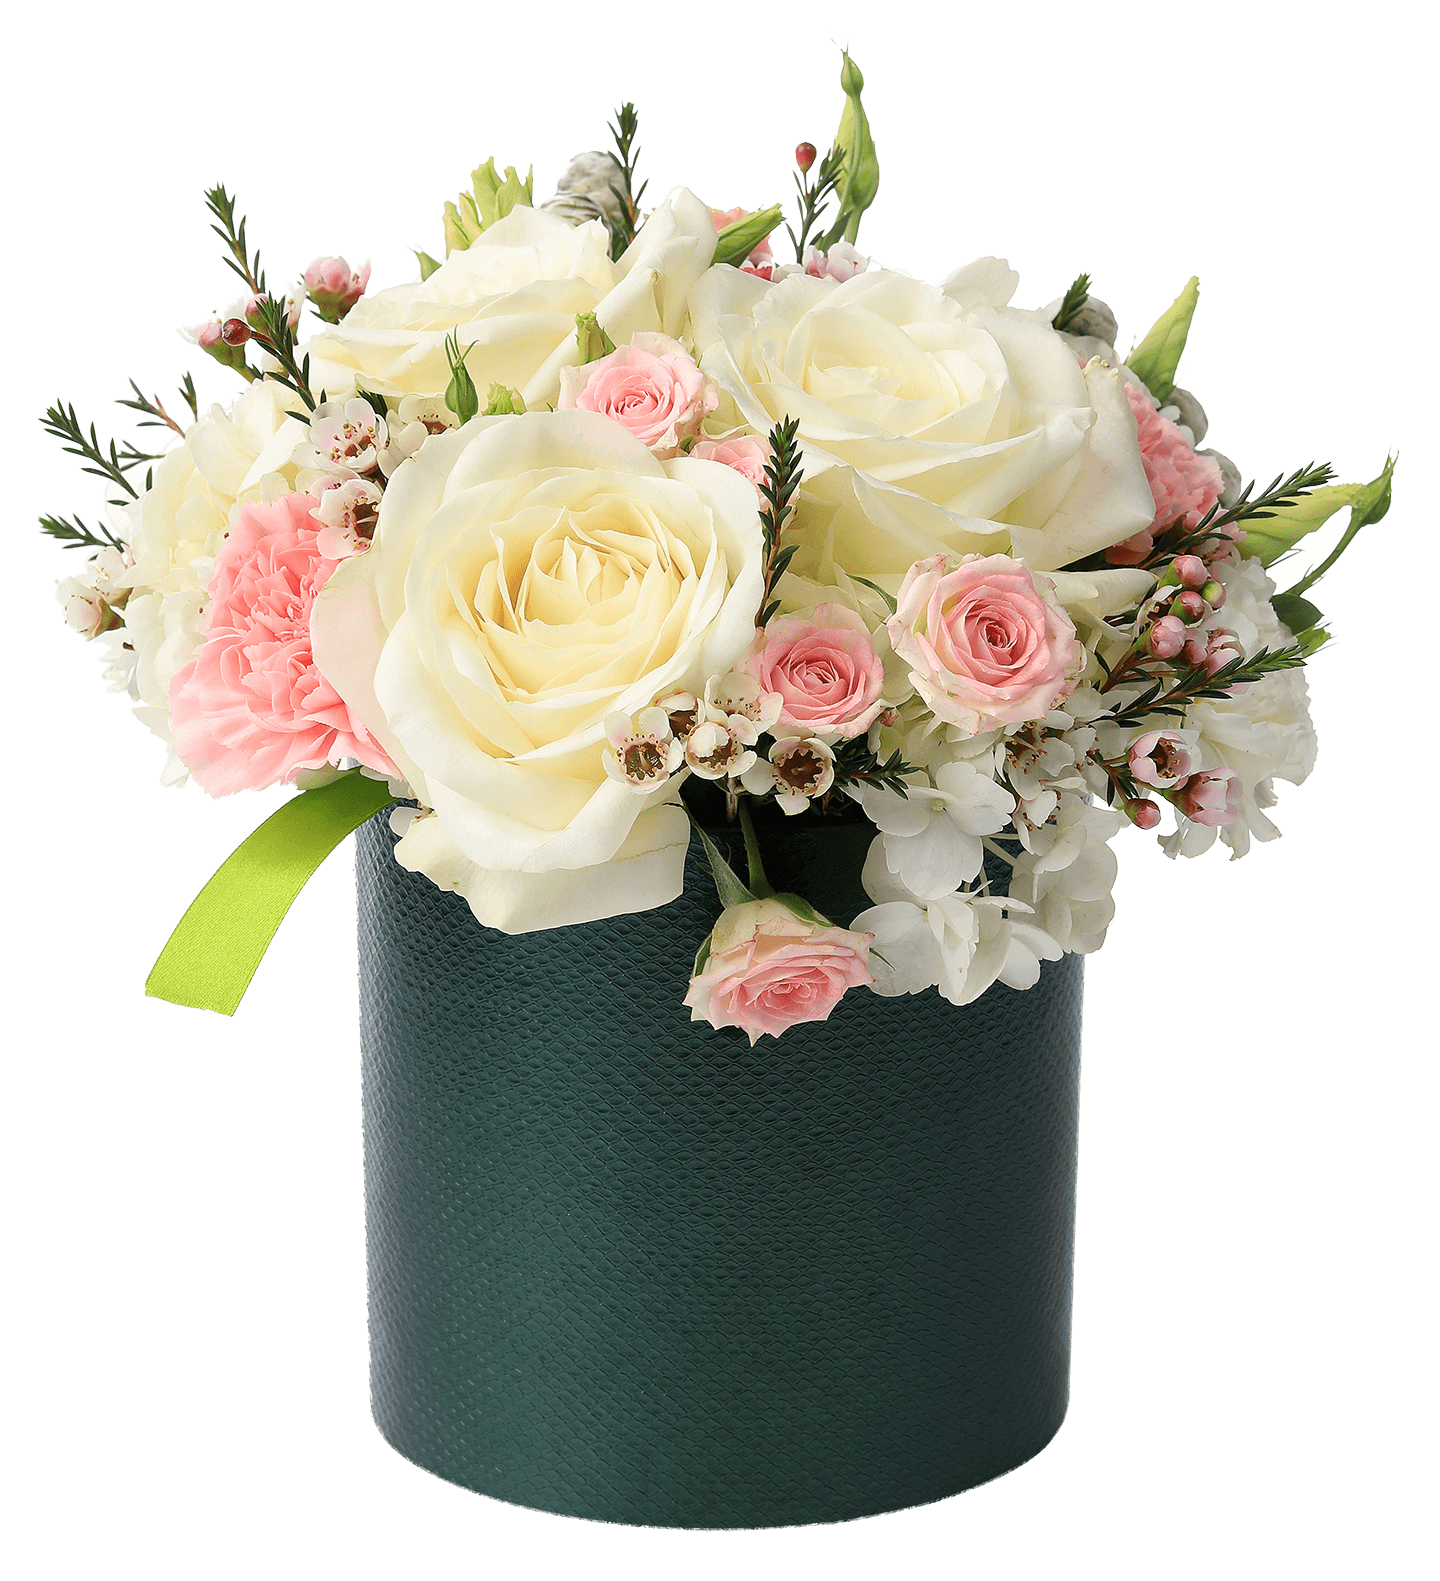 for free download. Flower box png